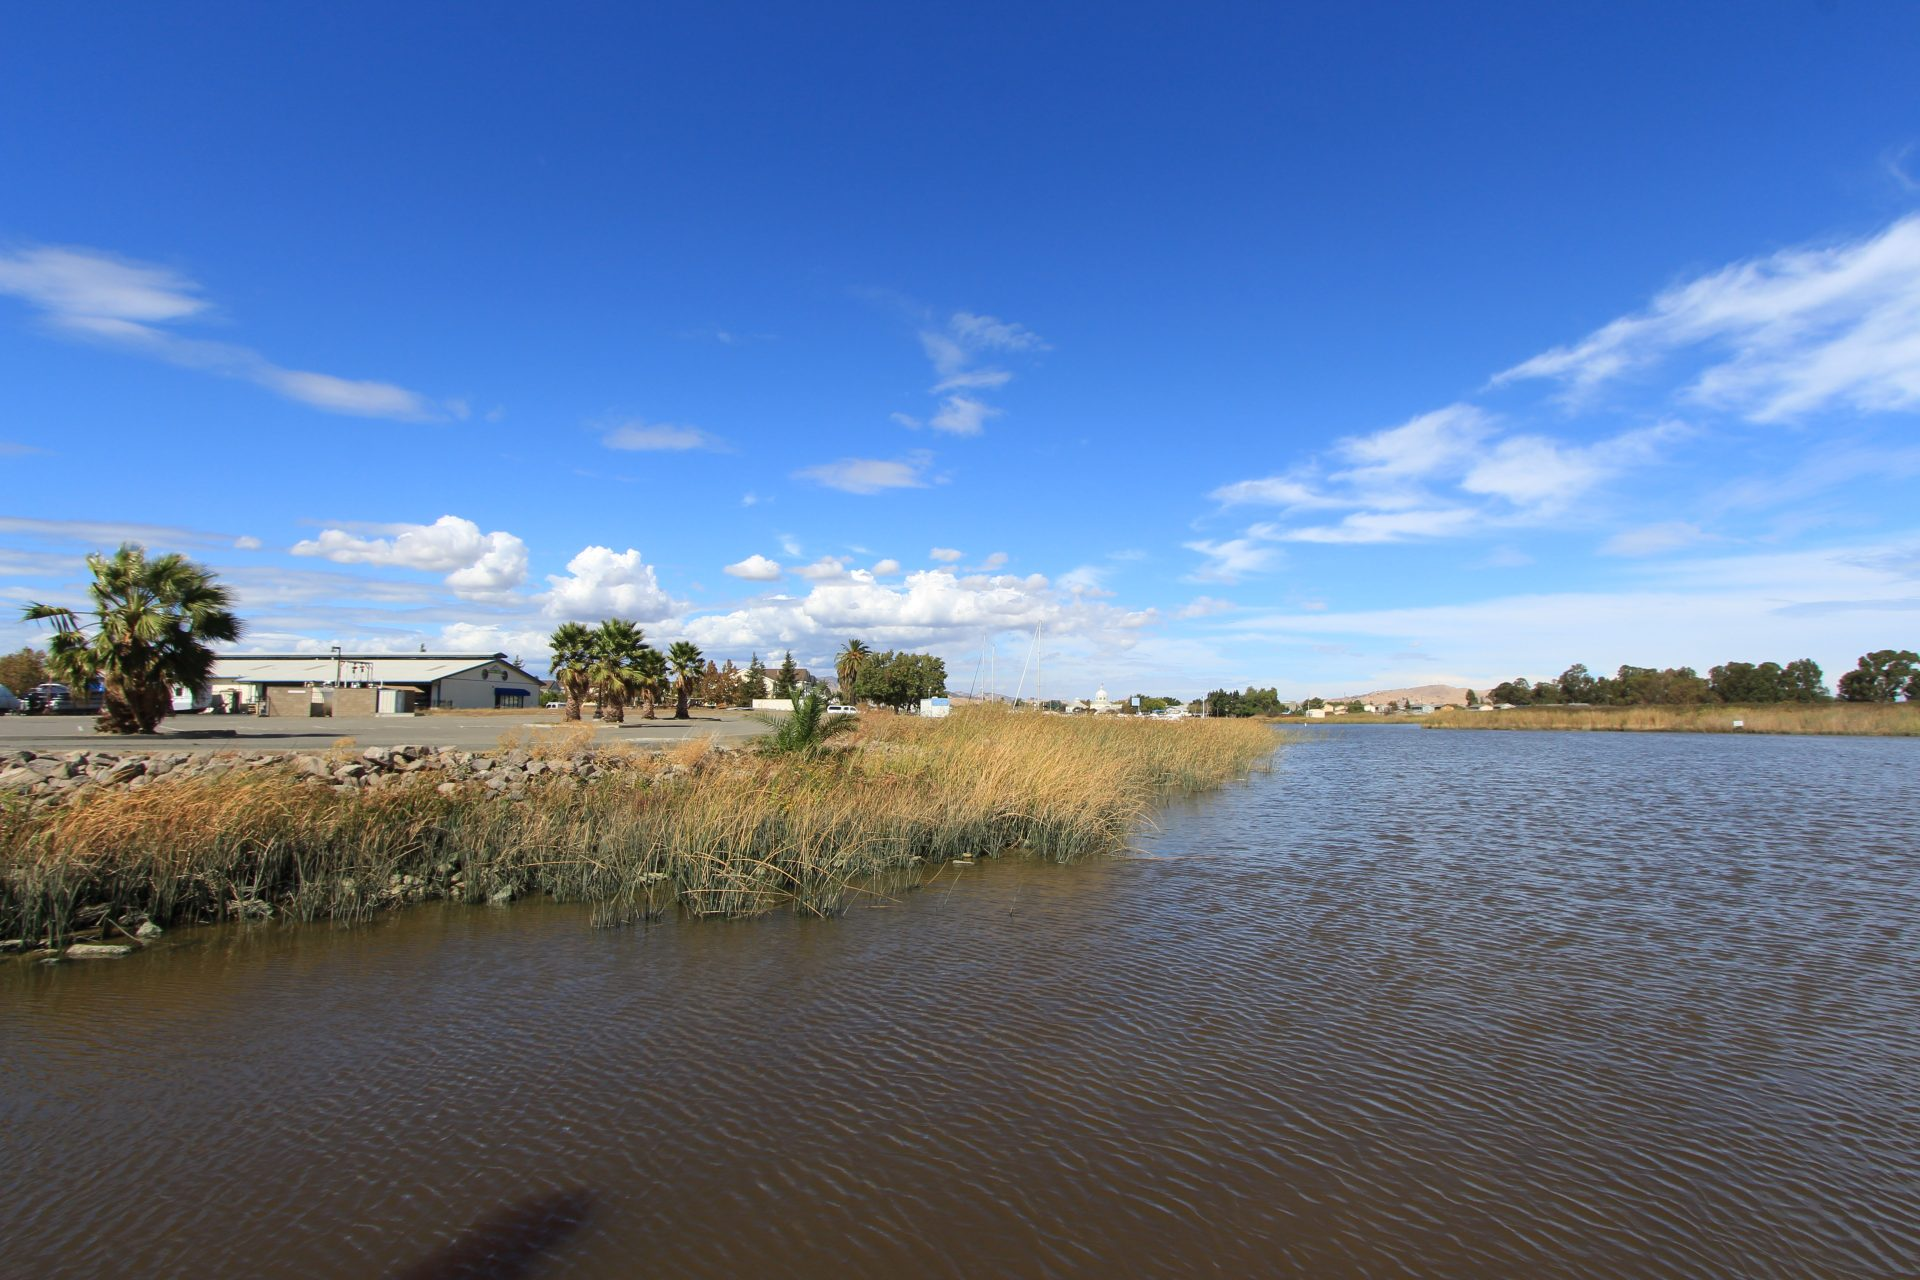 water rippling in wind, marshgrasses and blue cloud-dotted sky beyond